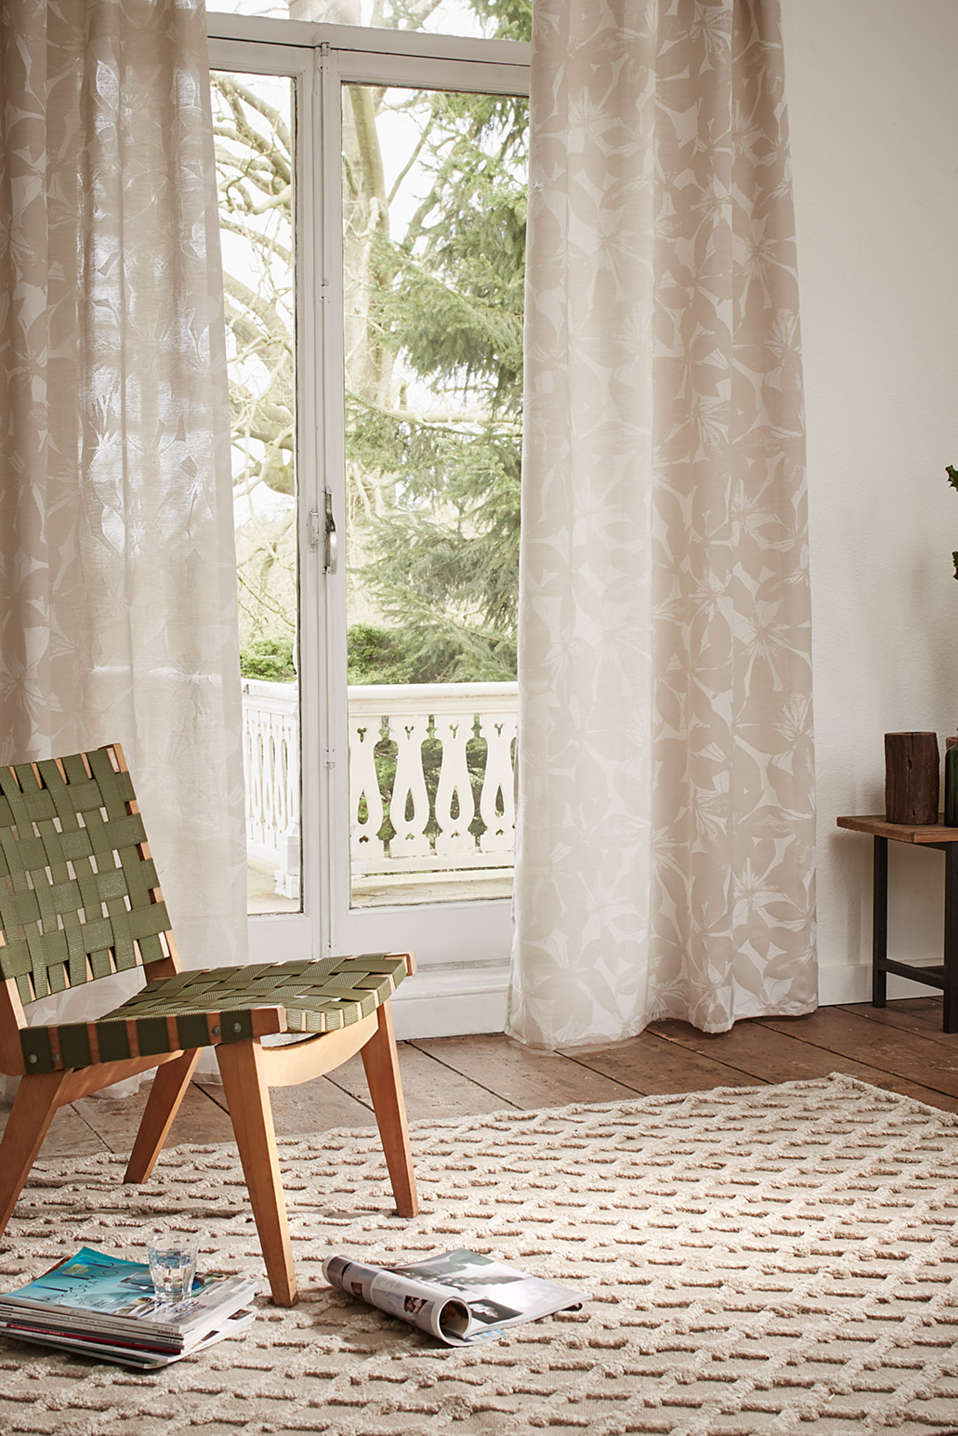 Esprit - eyelet curtain in elegant jacquard fabric